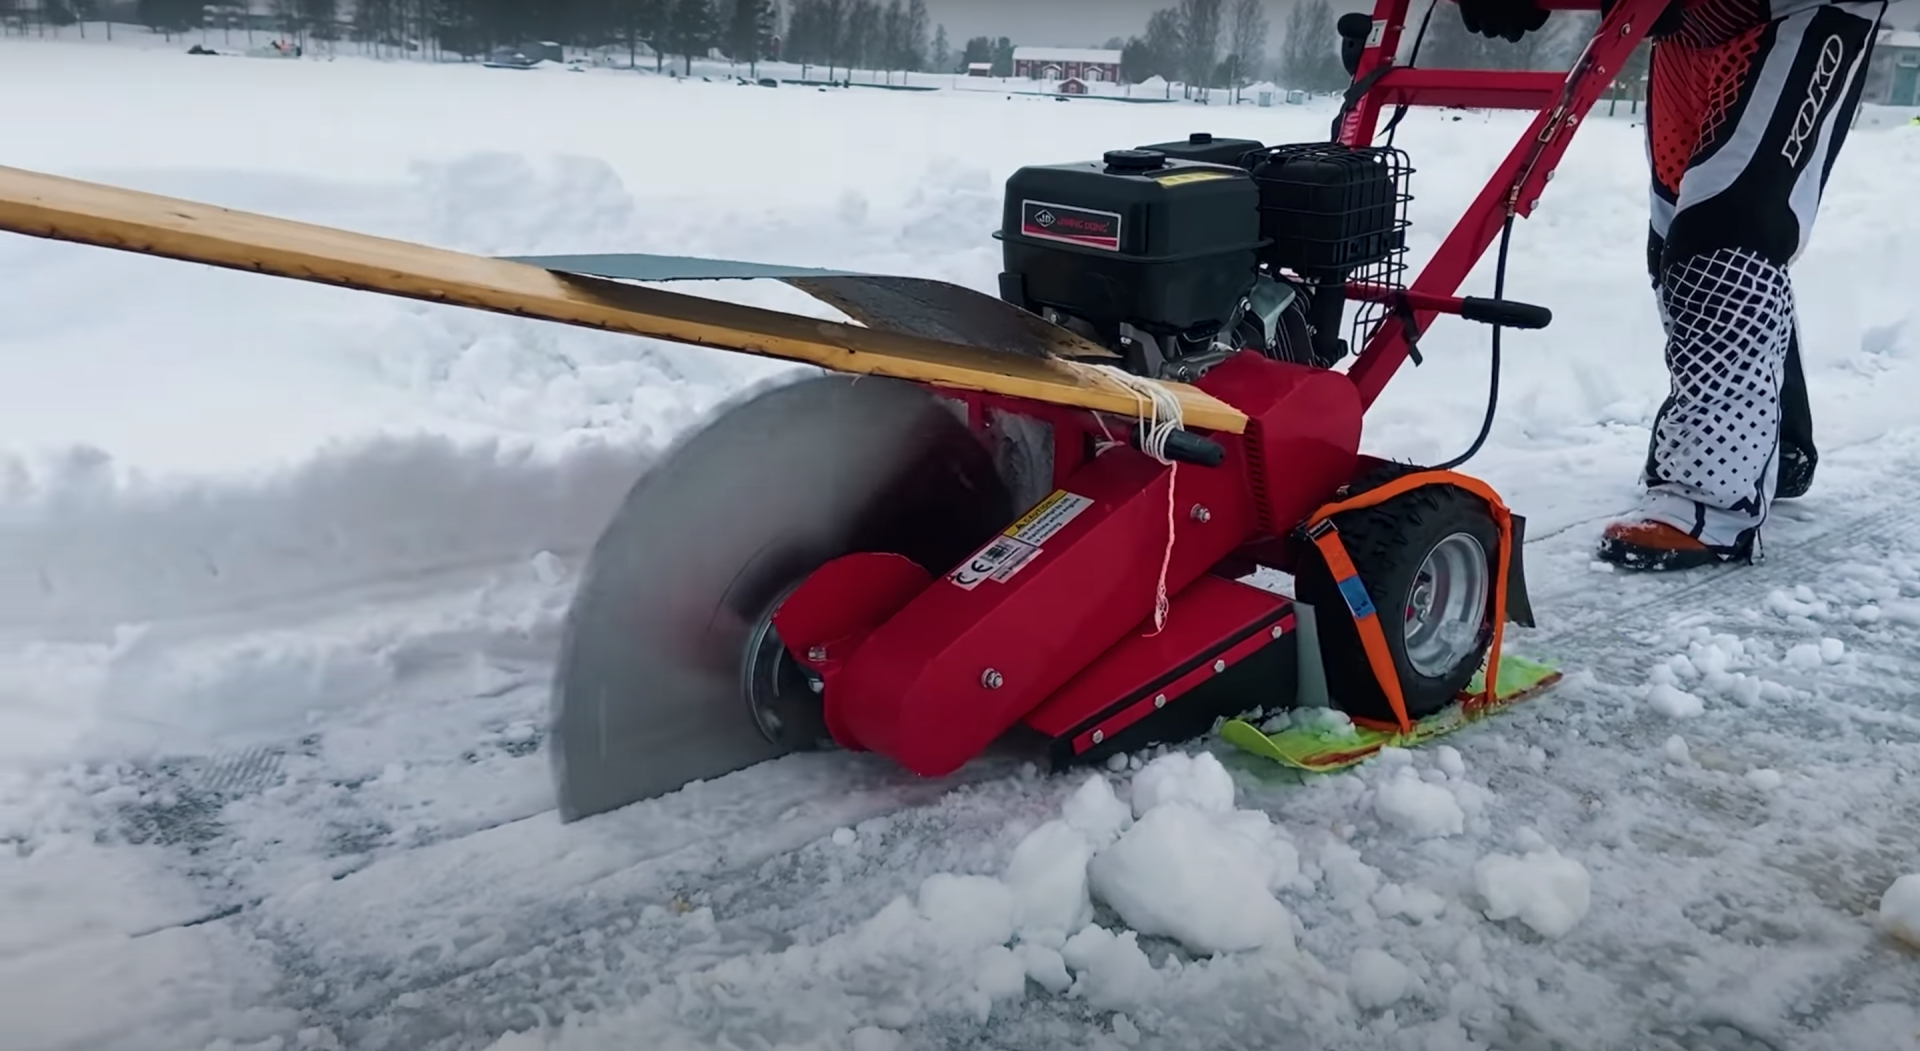 A stump grinder with an blade used to make an ice carousel